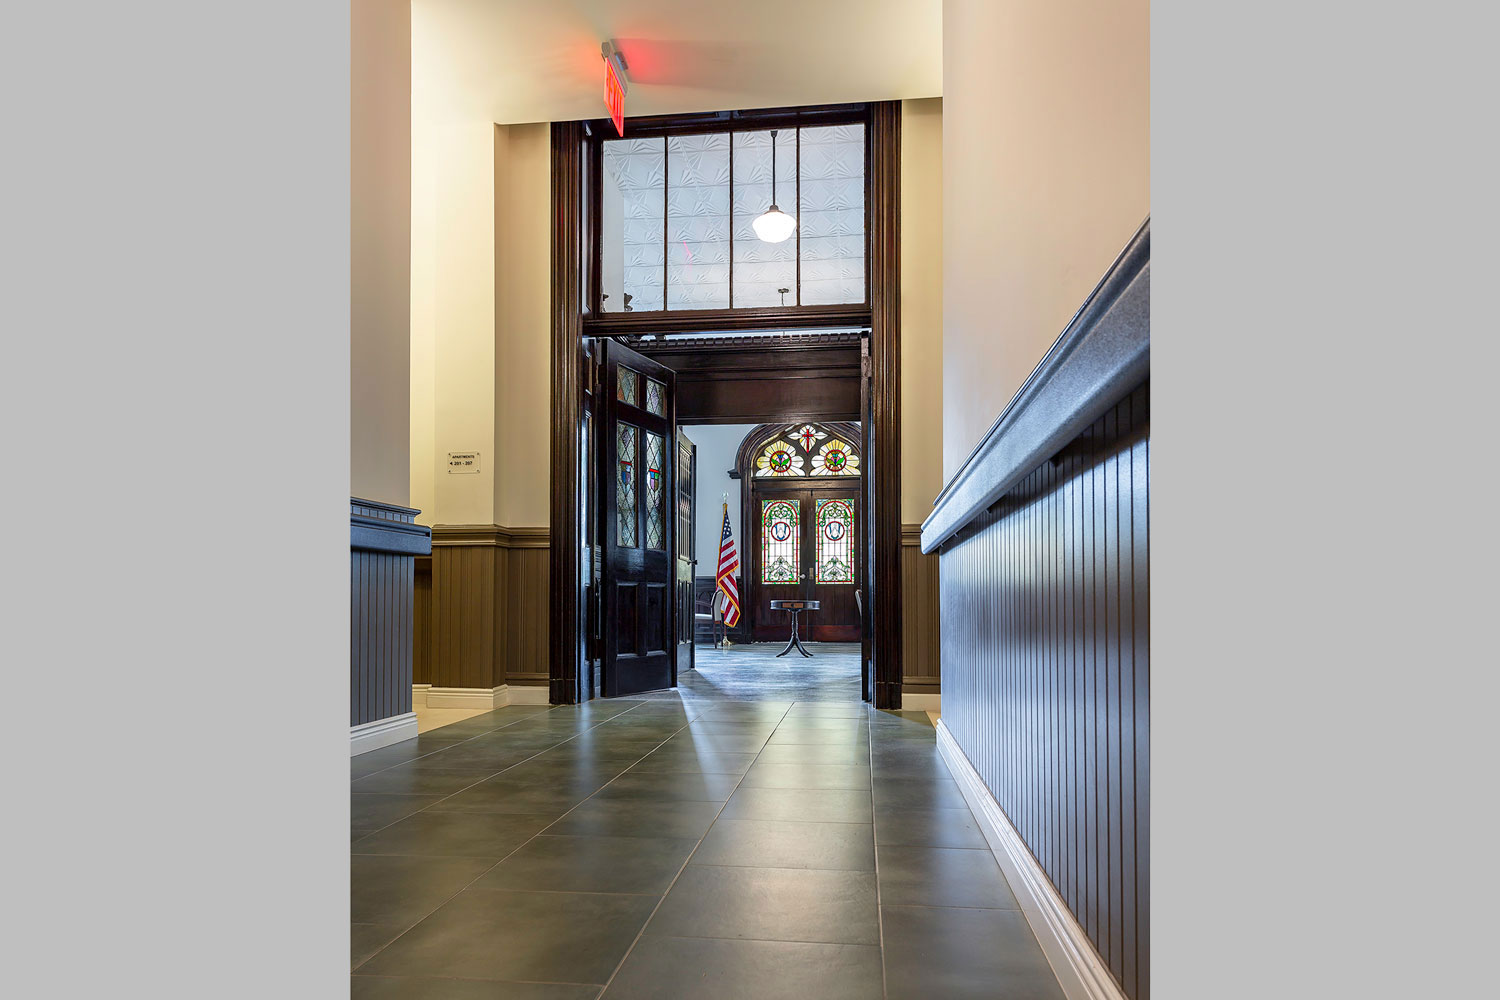 Hallway leading into the community room at Serviam Heights Senior Apartments